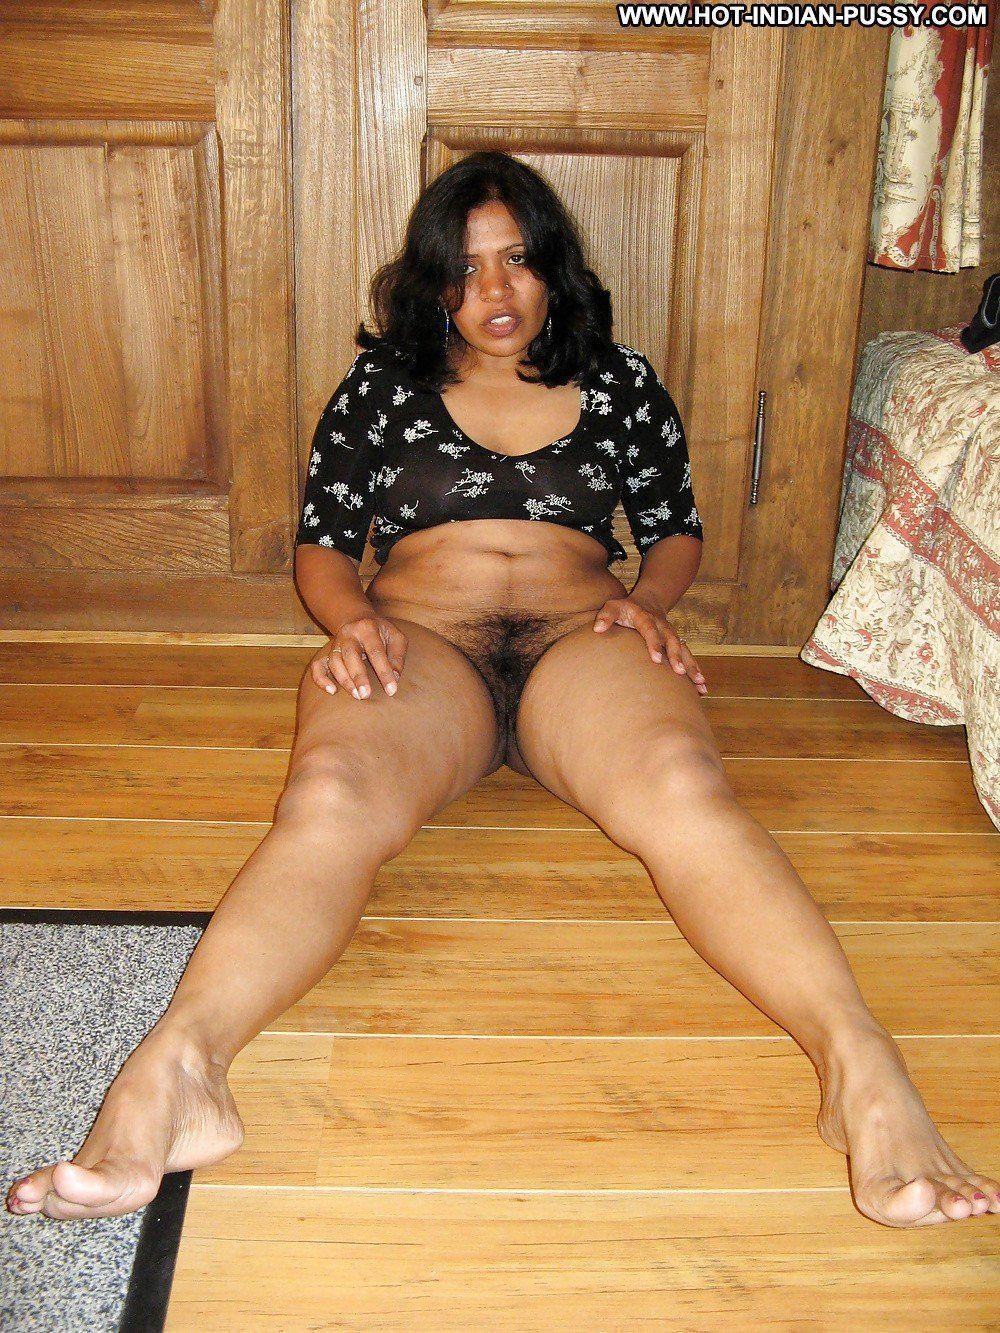 Think, nude milfs sexy indian good words